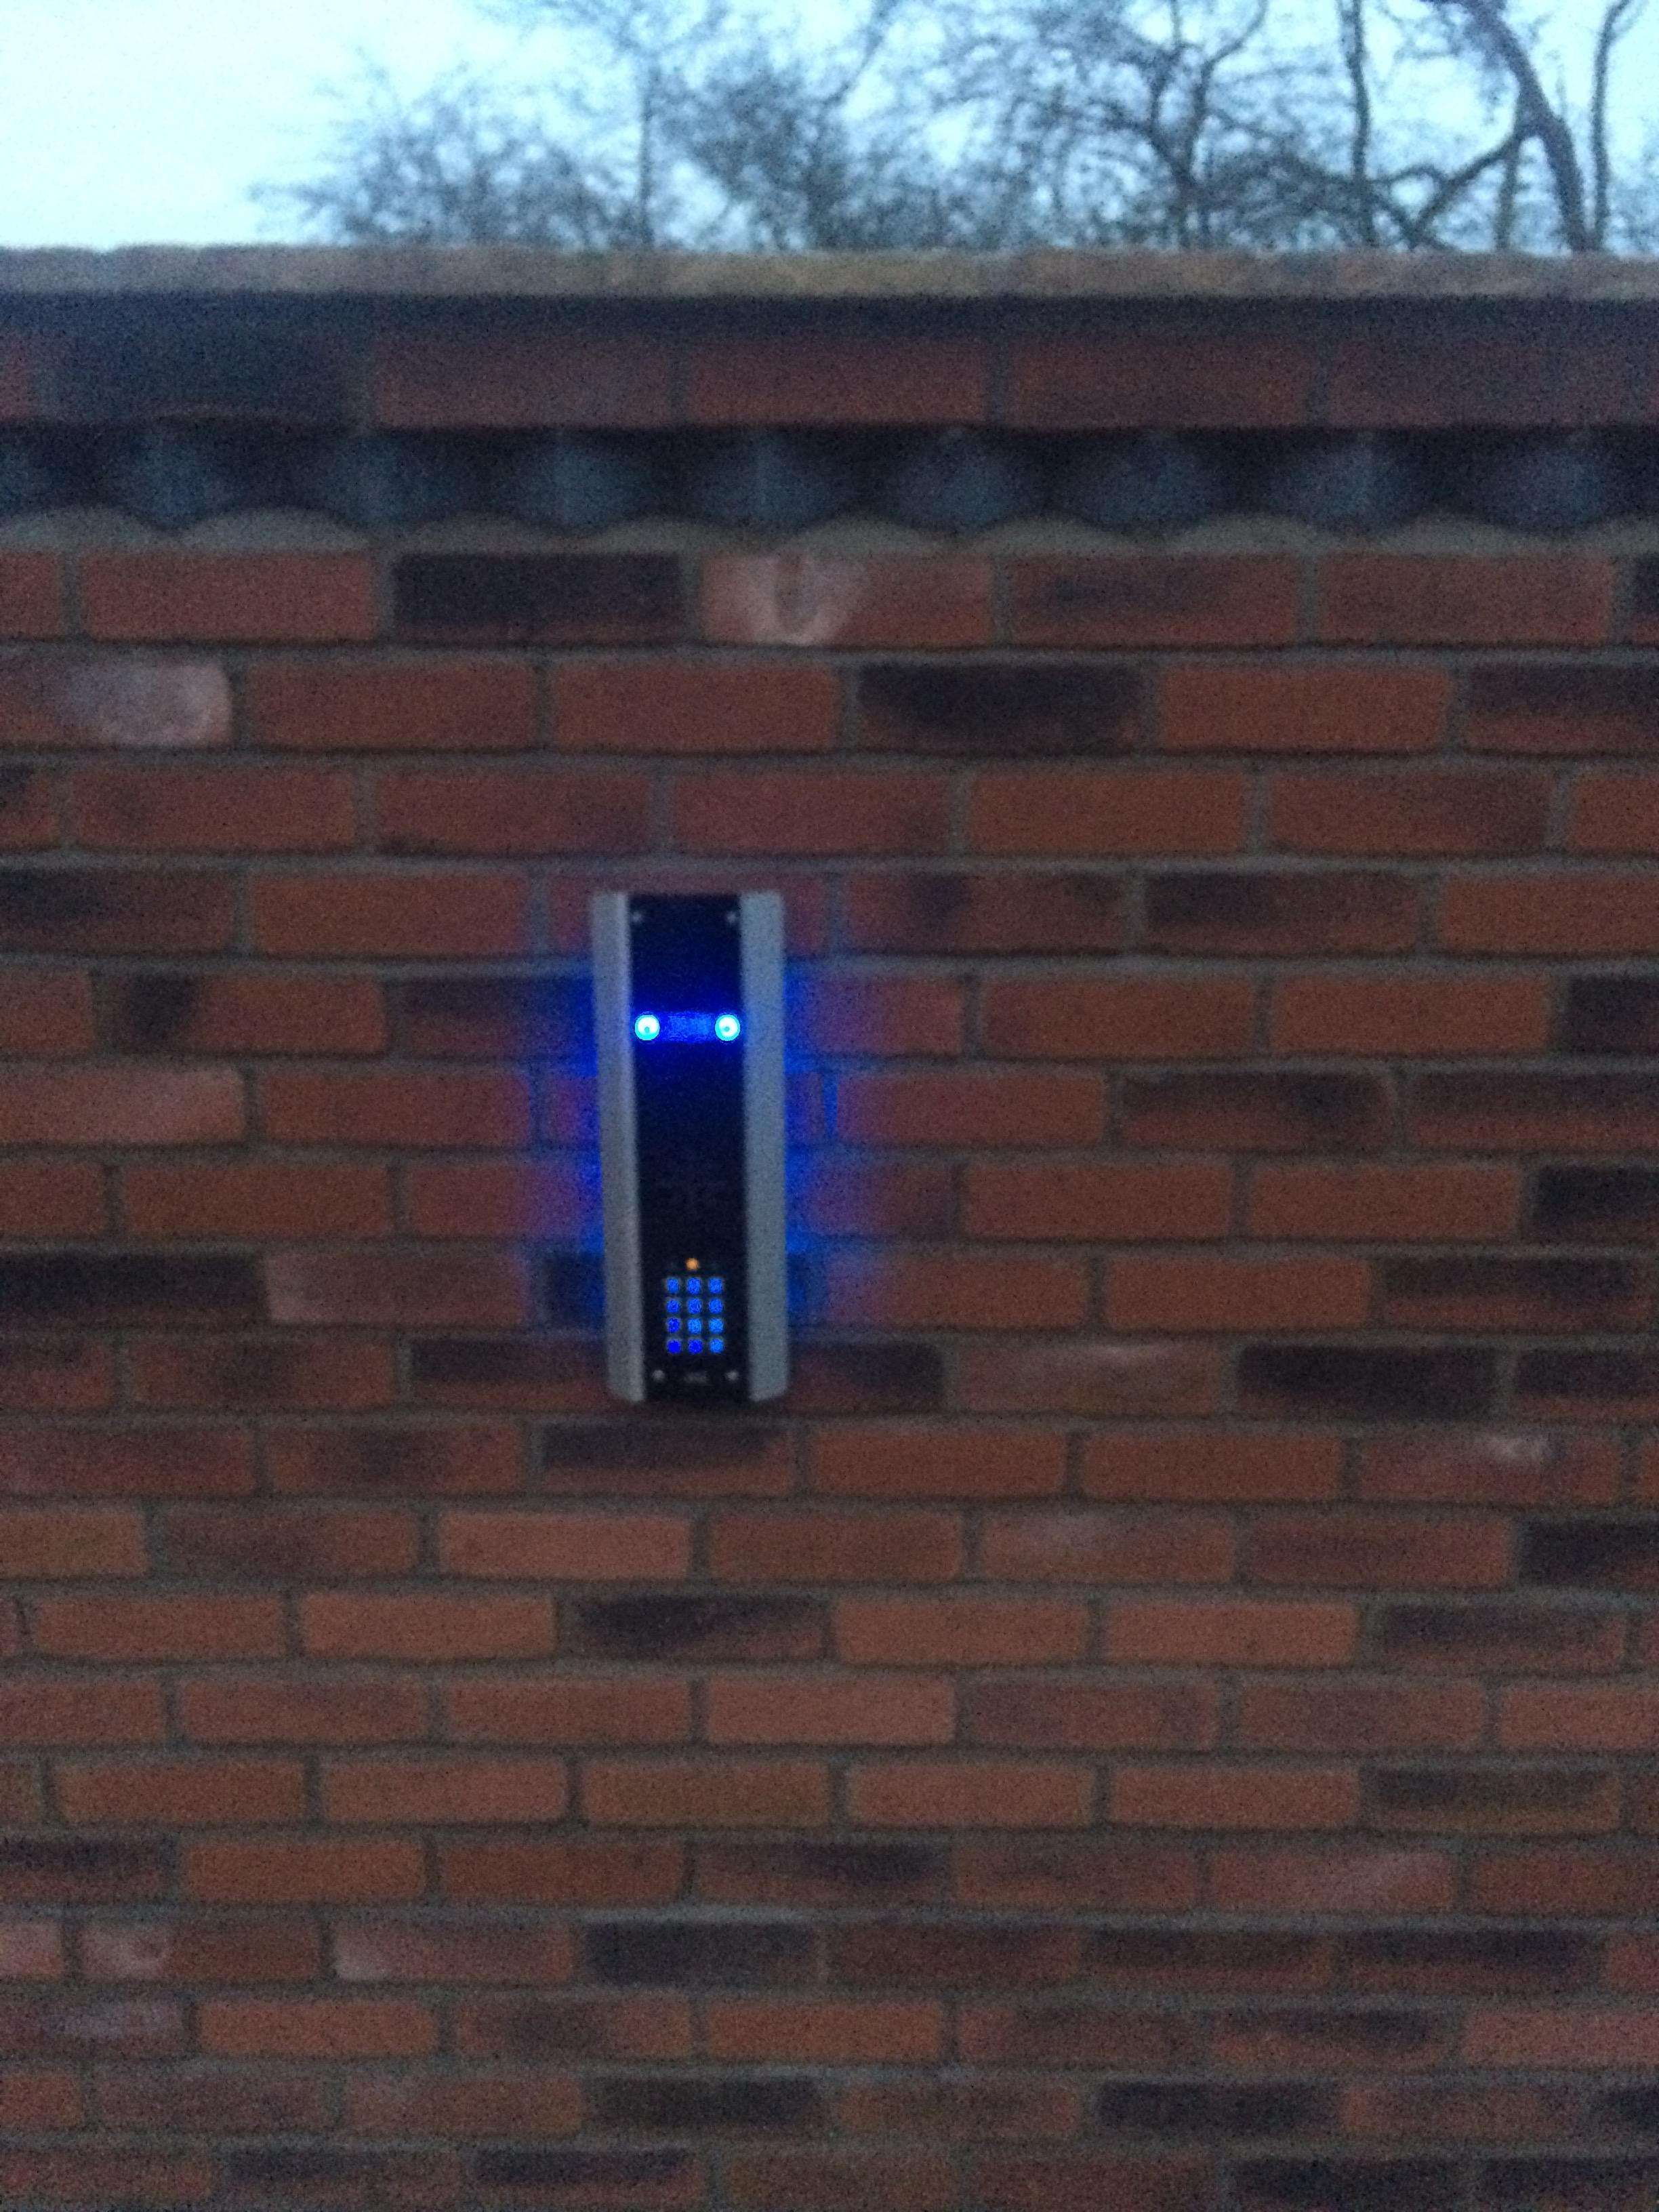 AES GSM INTERCOM APP intercom installed in nottingham